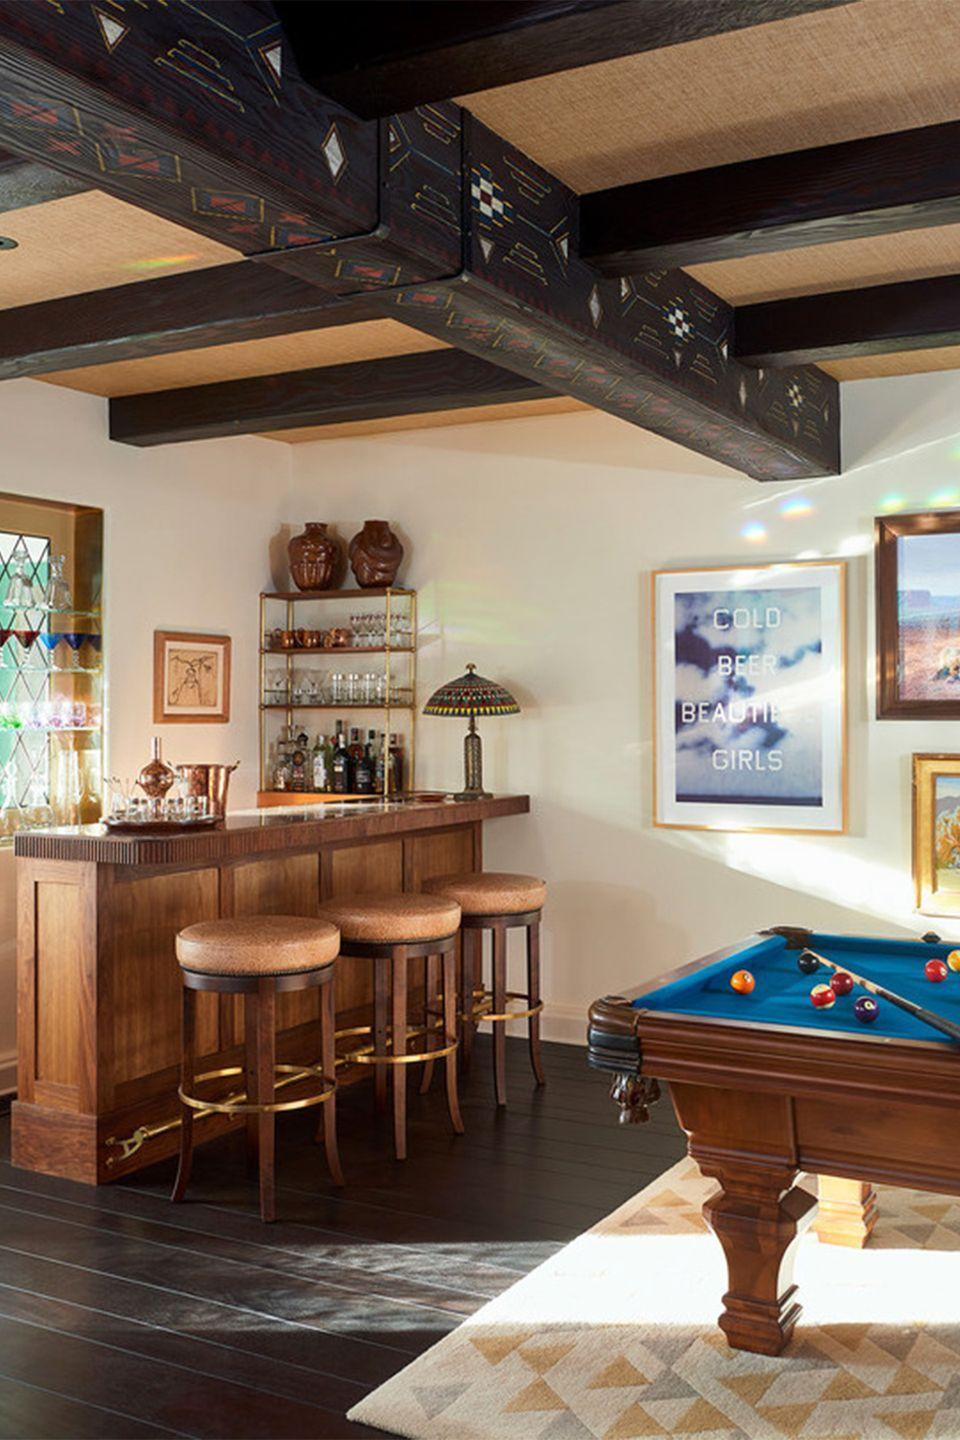 "<p>Turn an entire level—preferably a den or attic that feels like it's own private hangout—into a game zone, with each room dedicated to entertaining teens, kids, and adults alike. In this game room by <a href=""https://www.communedesign.com/"" rel=""nofollow noopener"" target=""_blank"" data-ylk=""slk:Commune Design"" class=""link rapid-noclick-resp"">Commune Design</a>, the pool table, home bar give, and kaleidoscopic stained glass reflections, it has a retro dive bar feel. </p>"